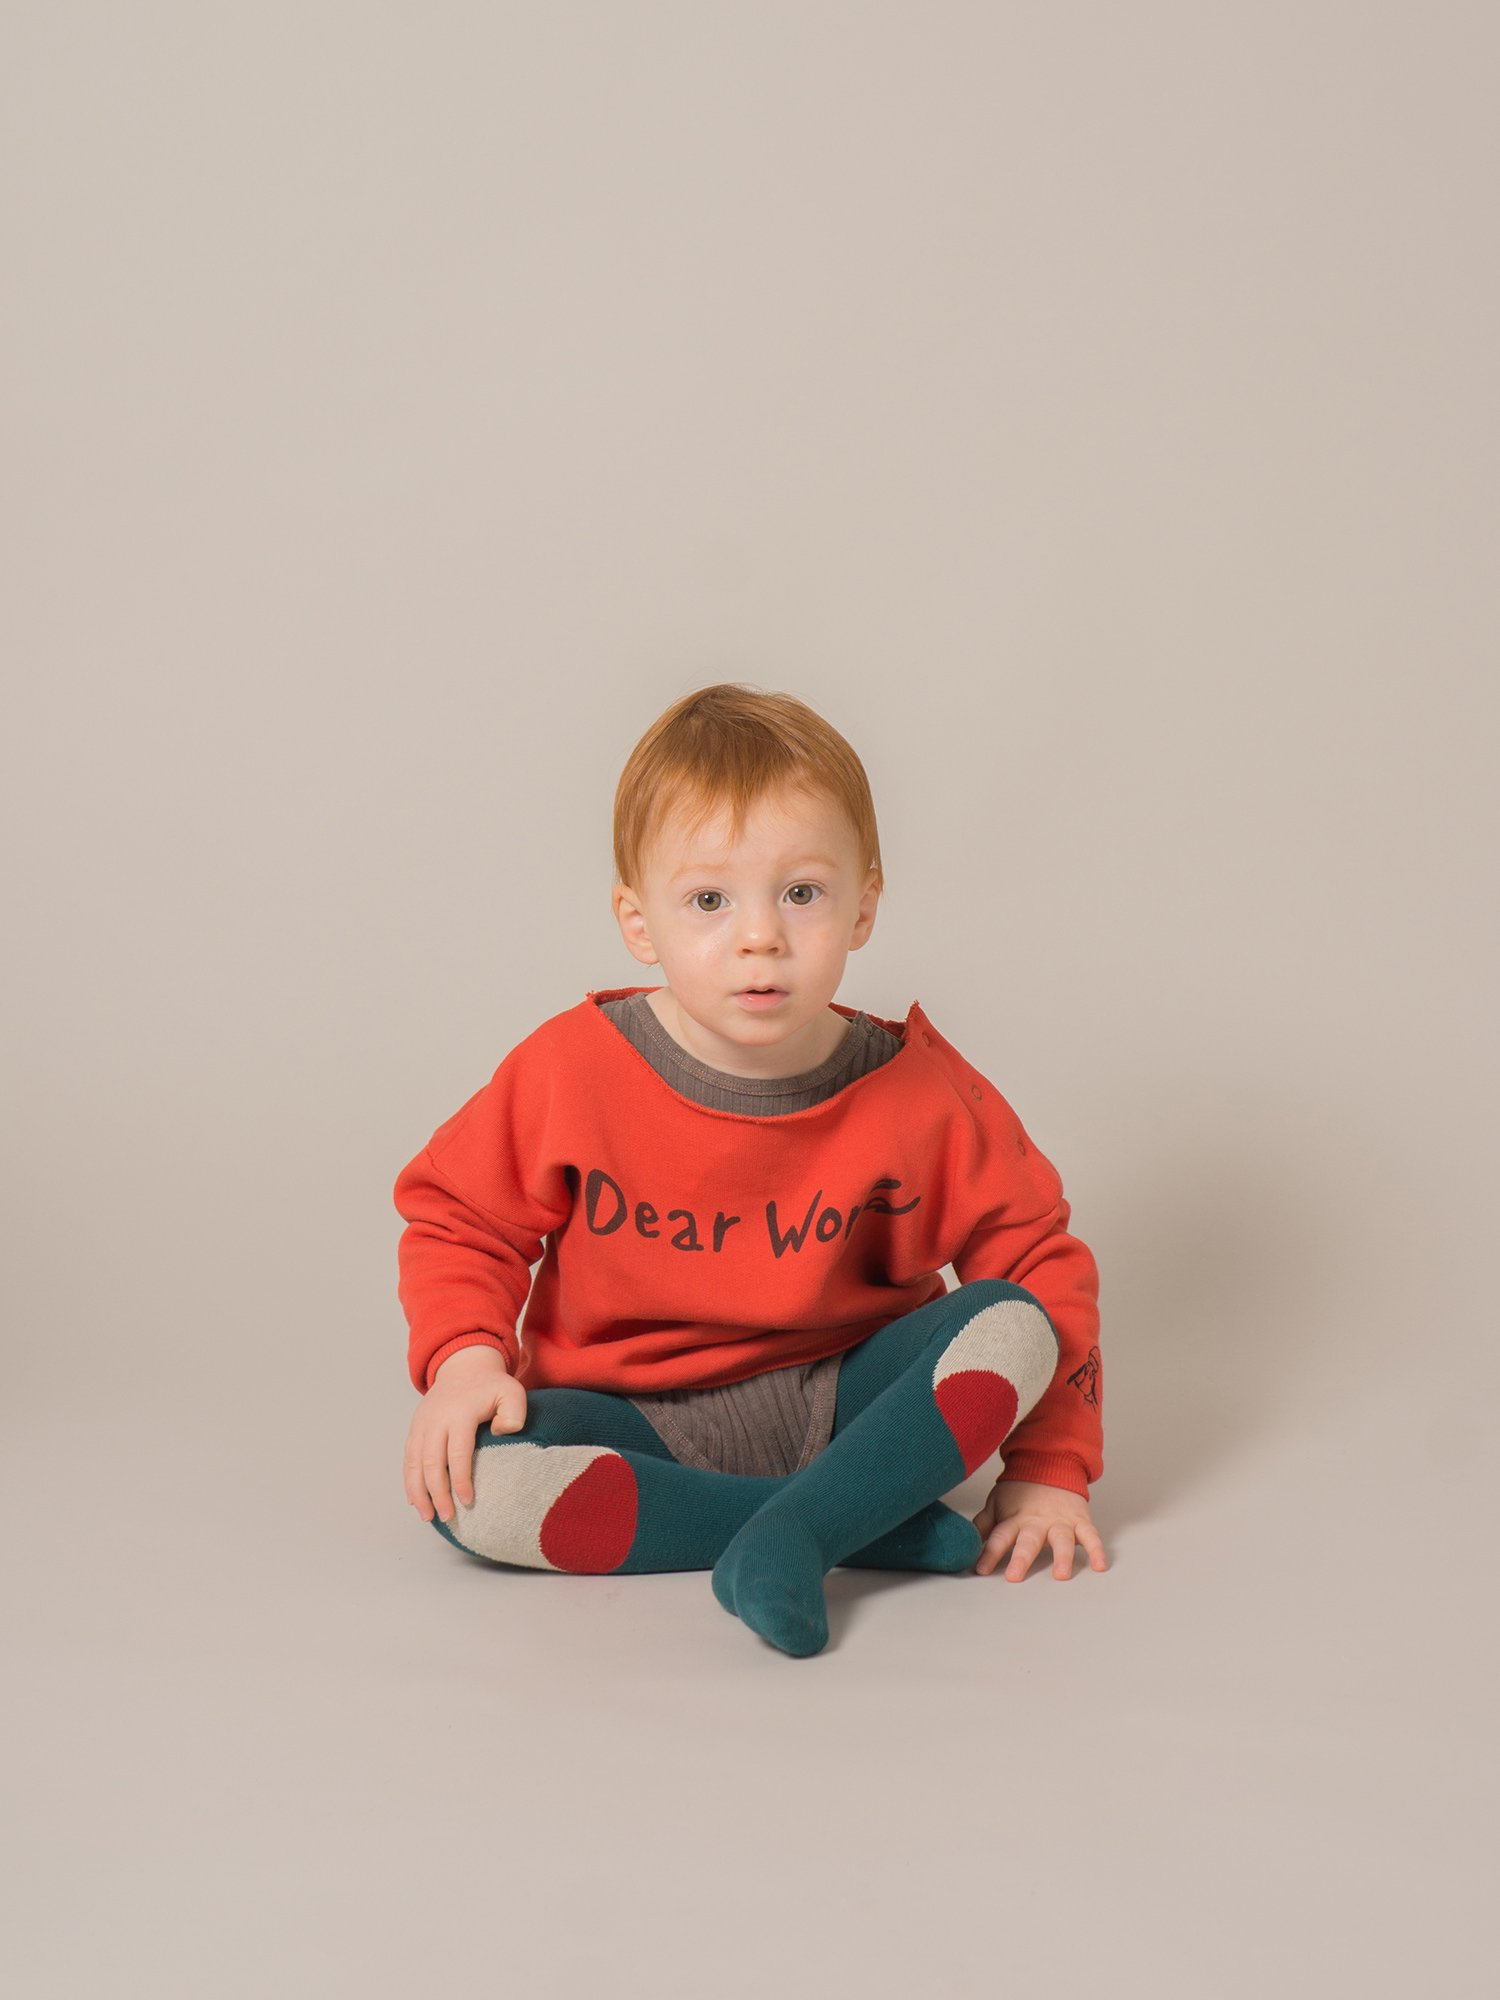 Baby Sweatshirt Dear World